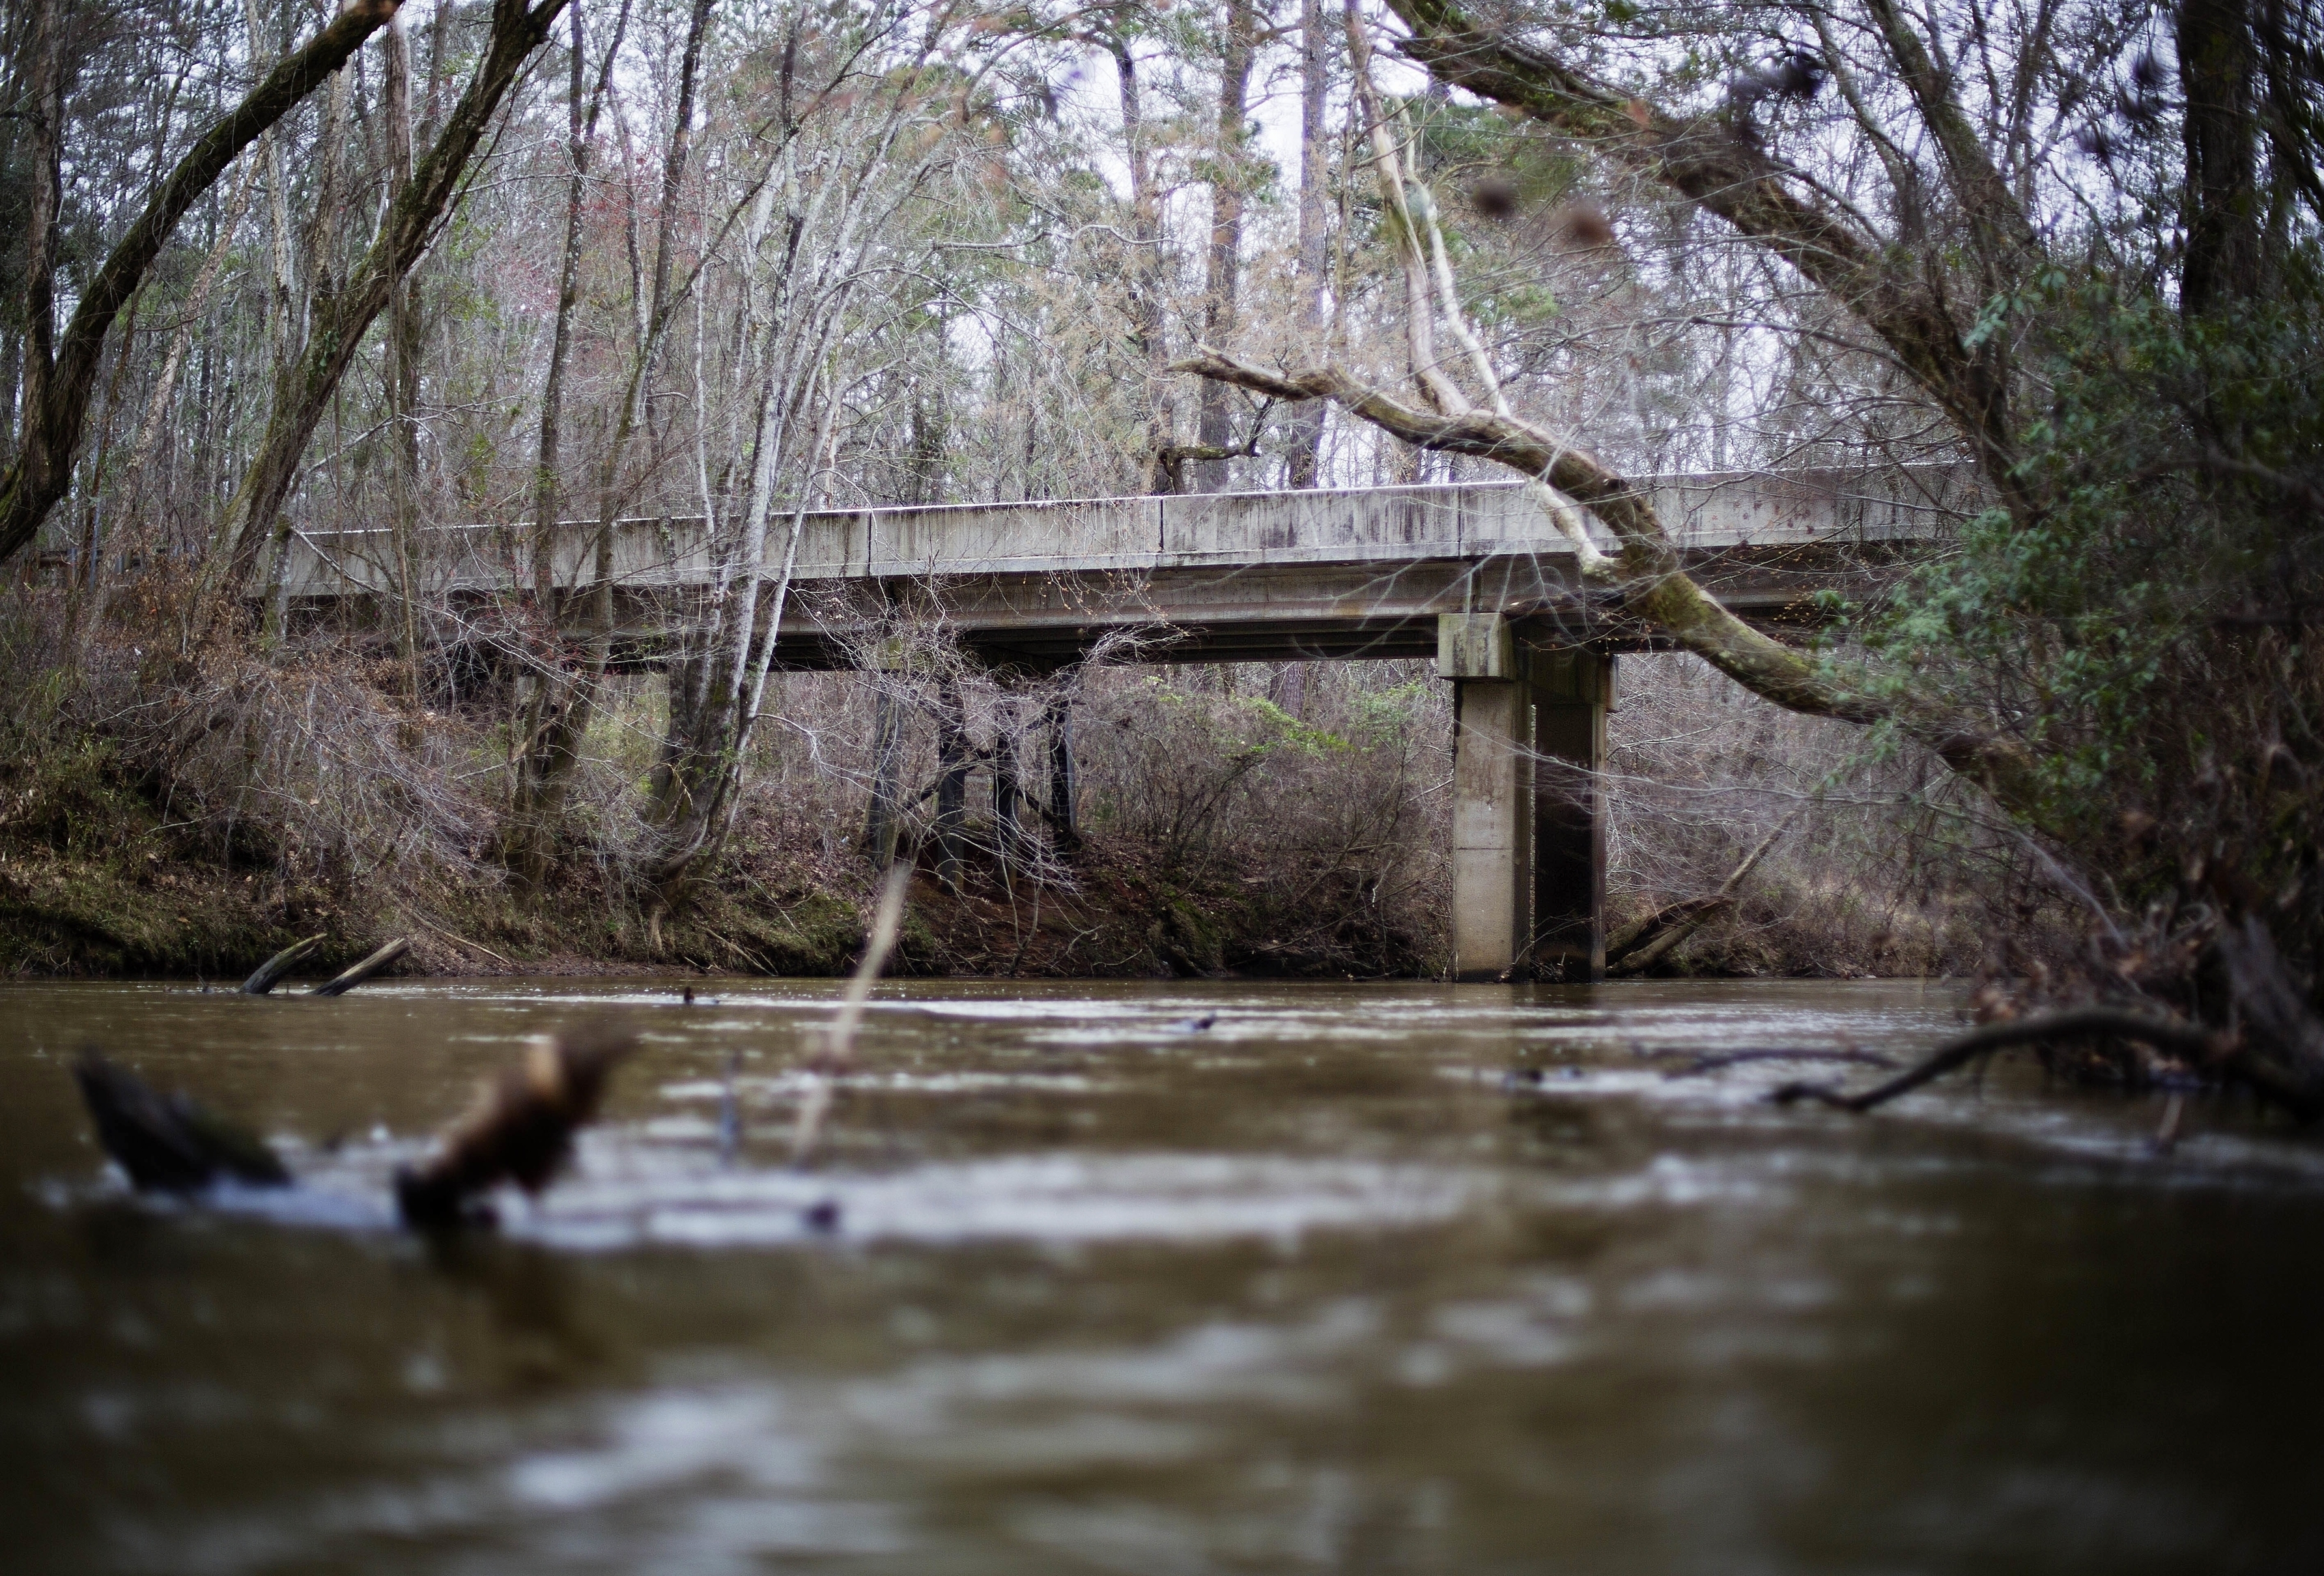 This Feb. 22, 2018 file photo shows a bridge that spans the Apalachee River at Moore's Ford Road where in 1946 two young black couples were stopped by a white mob who dragged them to the riverbank and shot them multiple times in Monroe, Ga.